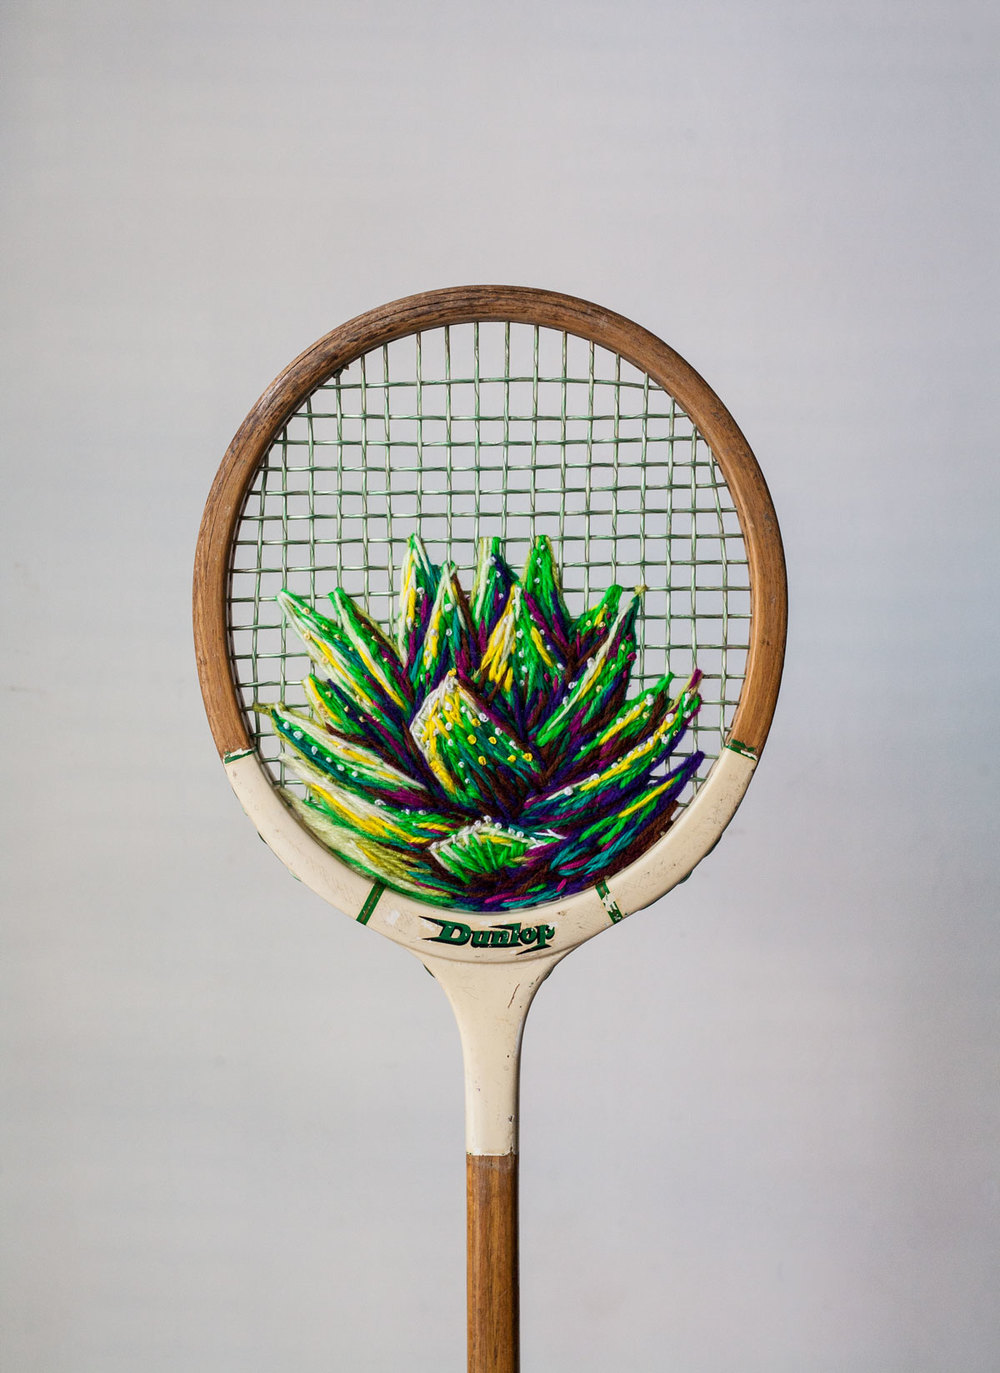 outstyled-tennis-racket-embroidery-6.jpg